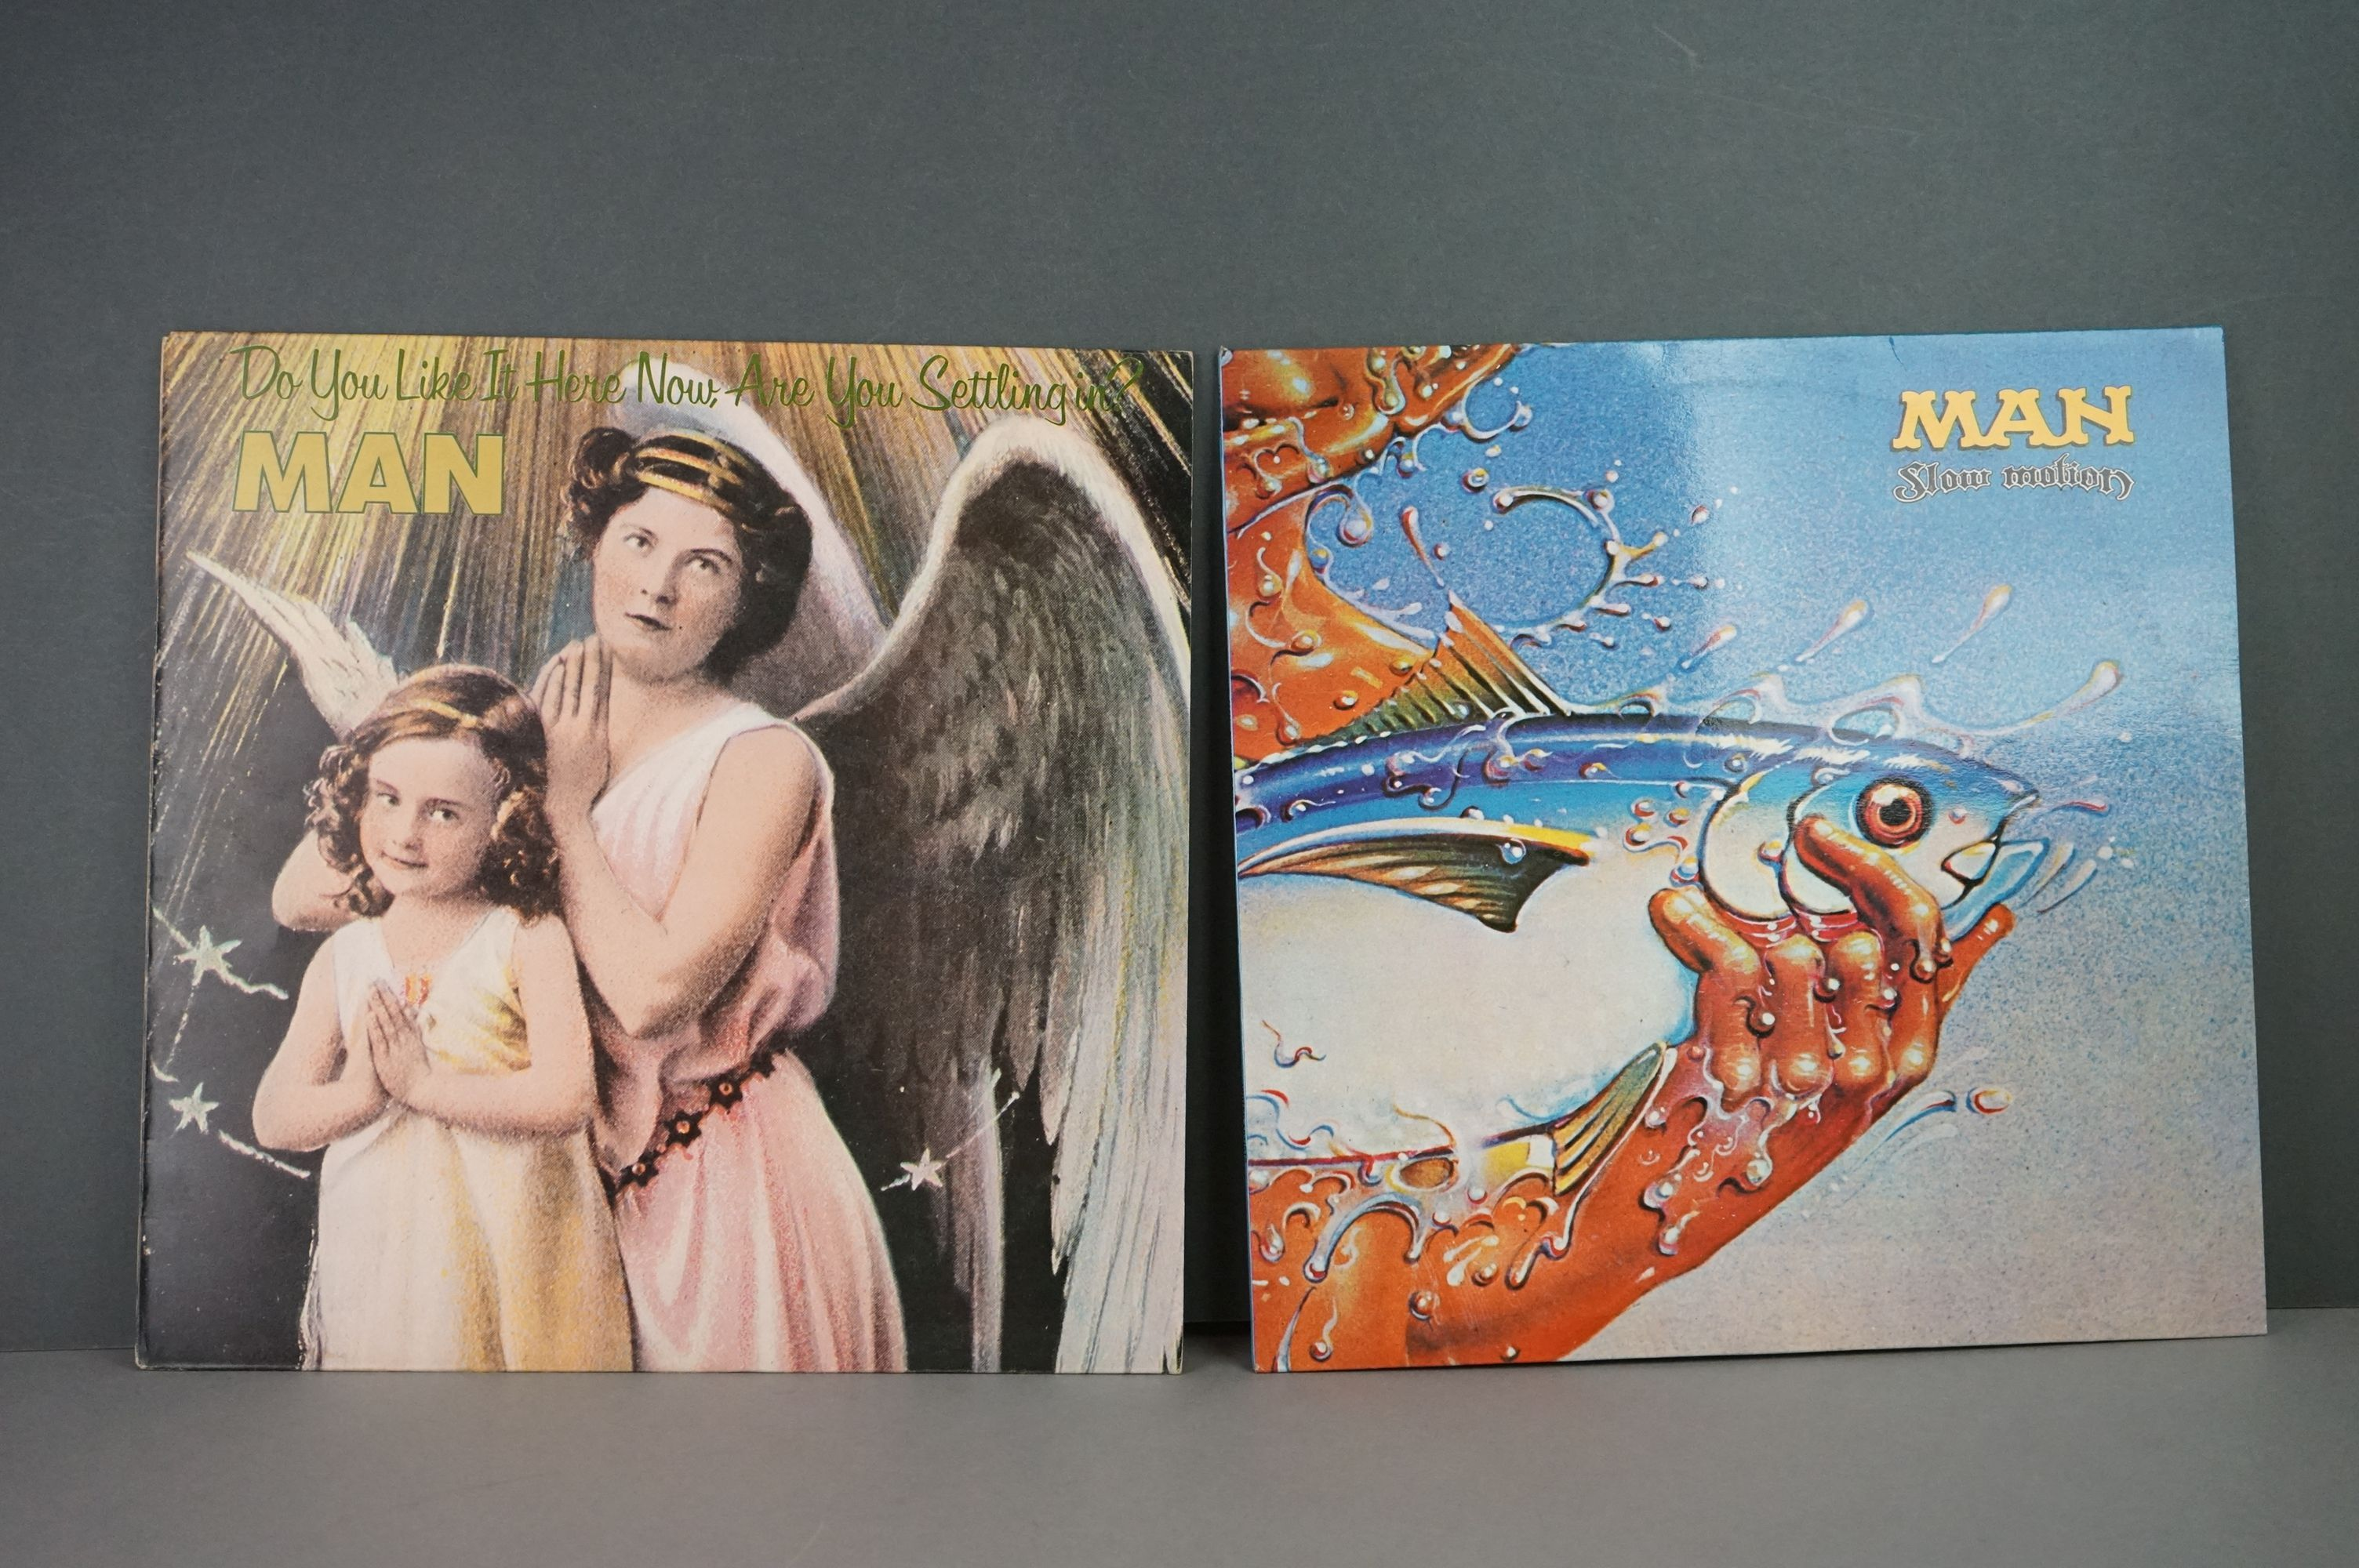 Vinyl - Man 2 LP's to include Slow Motion (UAG 29675) and Do You Like It Here (UAG 29236). Sleeves &